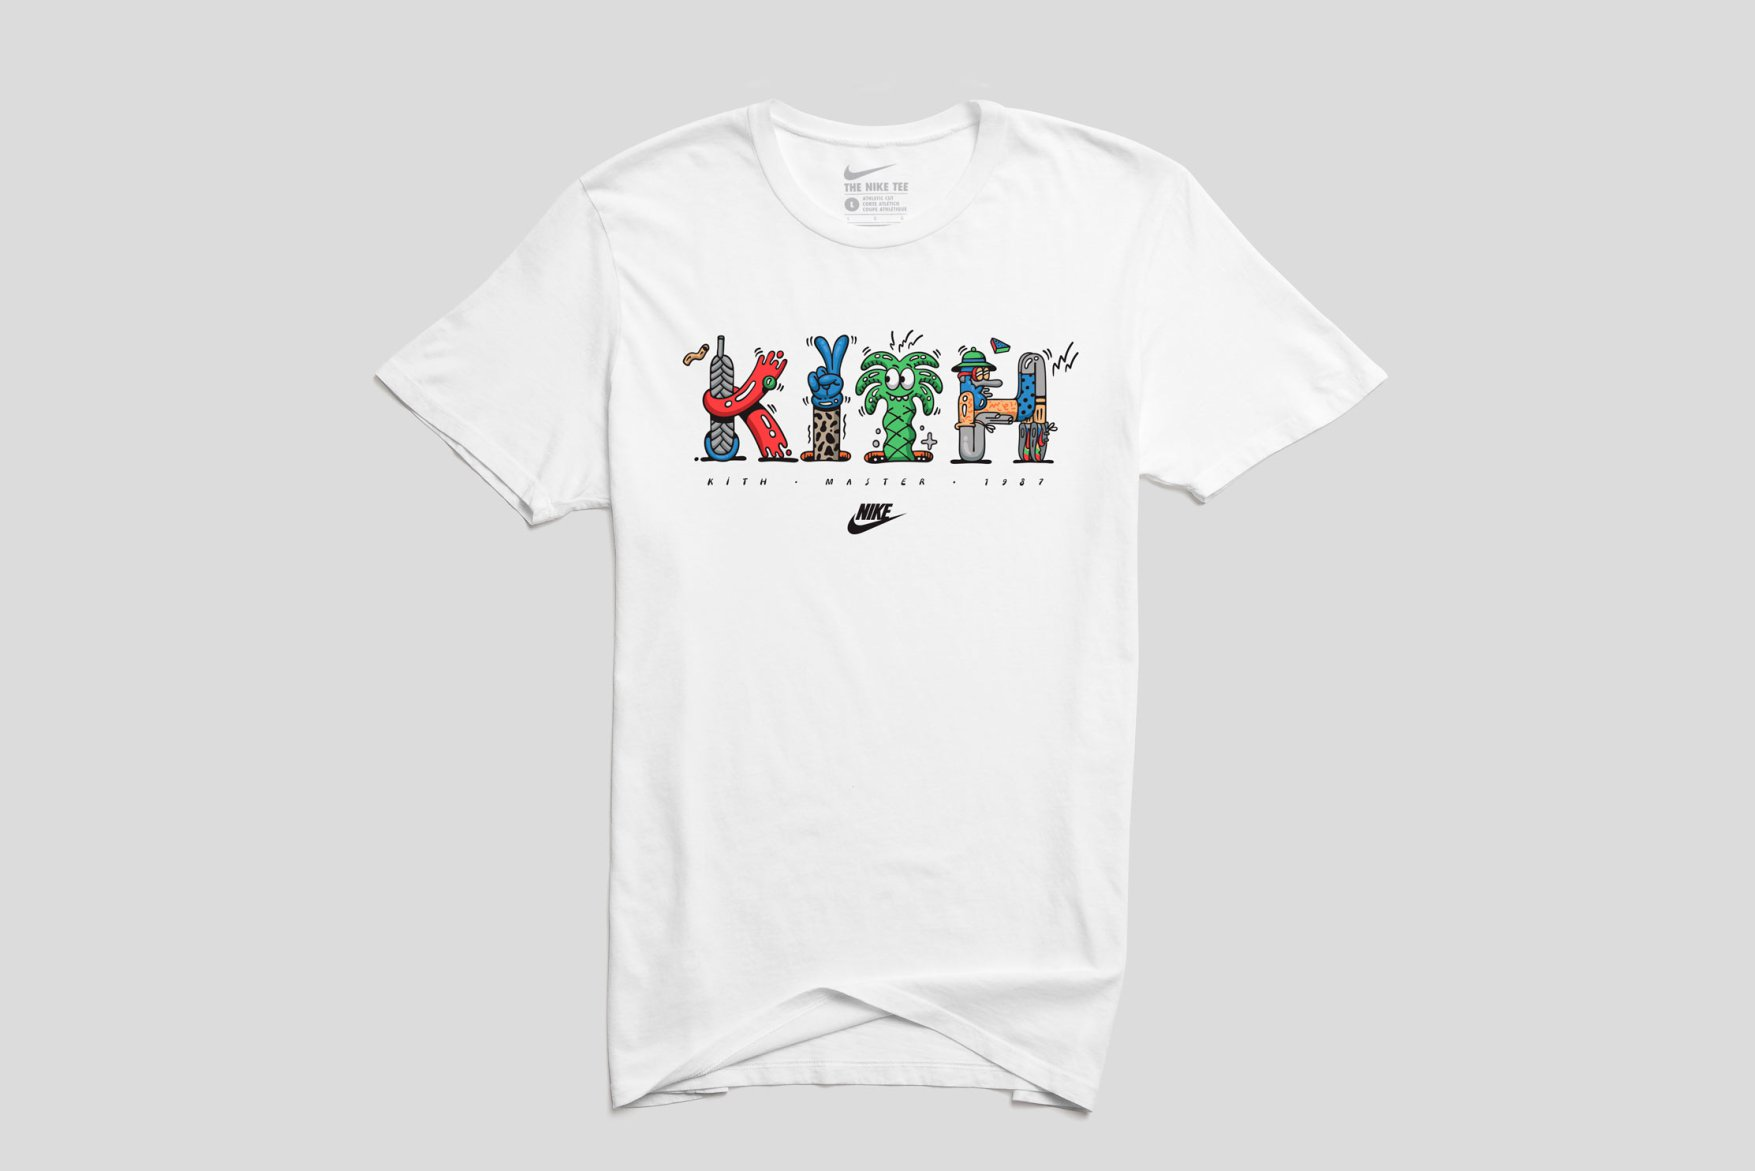 kith-steven-harrington-nike-collaboration-5